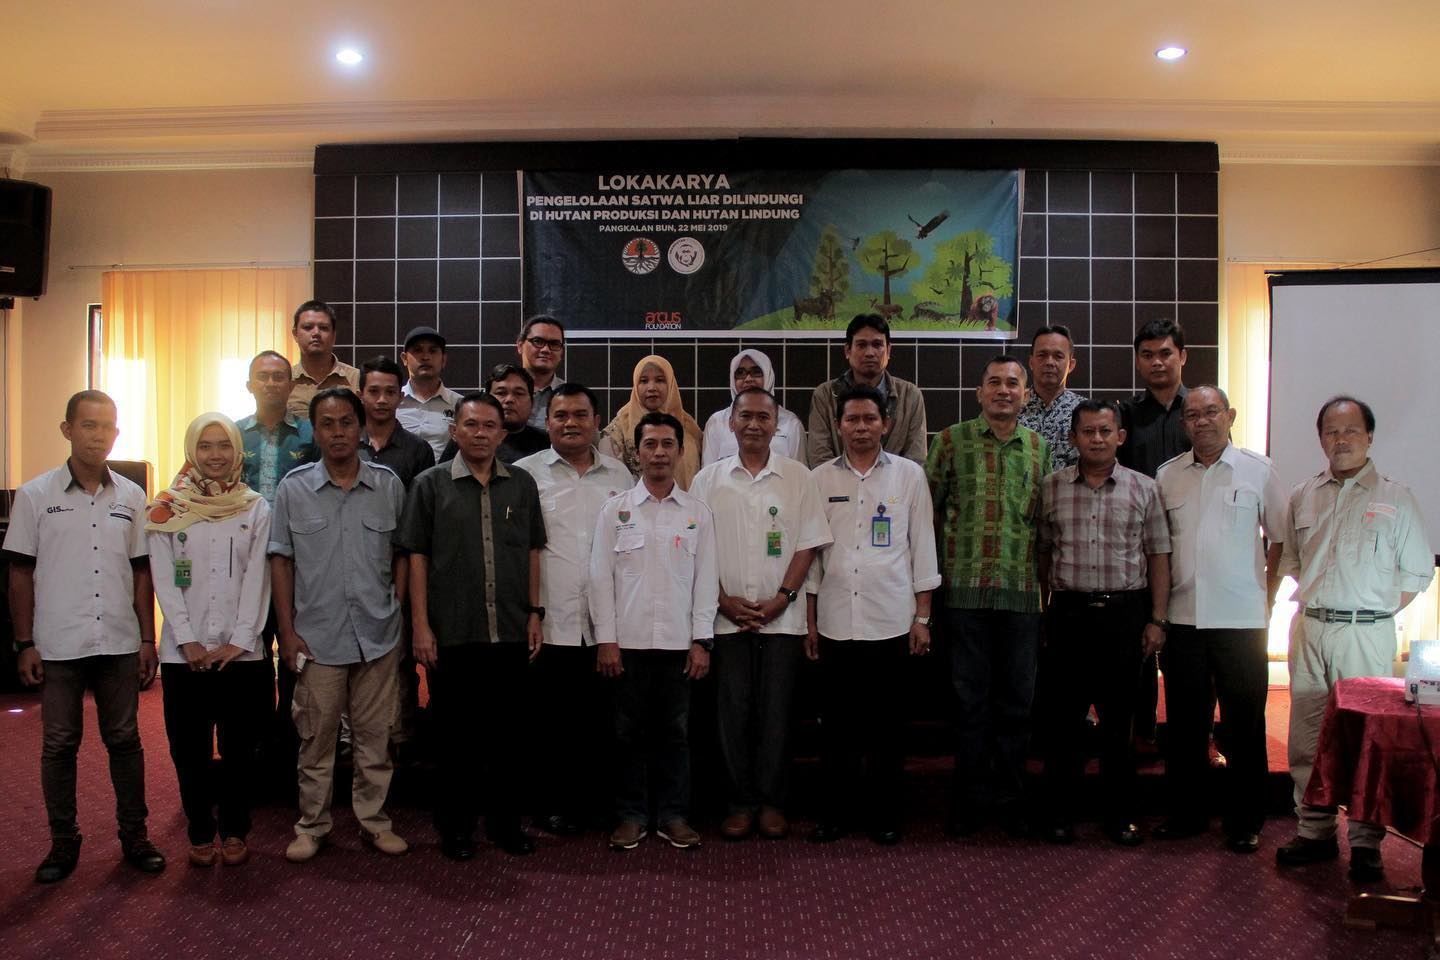 Workshop participants including Directorate of Biodiversity Conservation (KKH), Ditjend KSDAE-Ministry of LHK, Central Kalimantan Orangutan Forum (Forkah), Central Kalimantan Forest Service, Orangutan Foundation (OF-UK Indonesia), Korindo Group, Wilmar Group, and Central Kalimantan BKSDA.